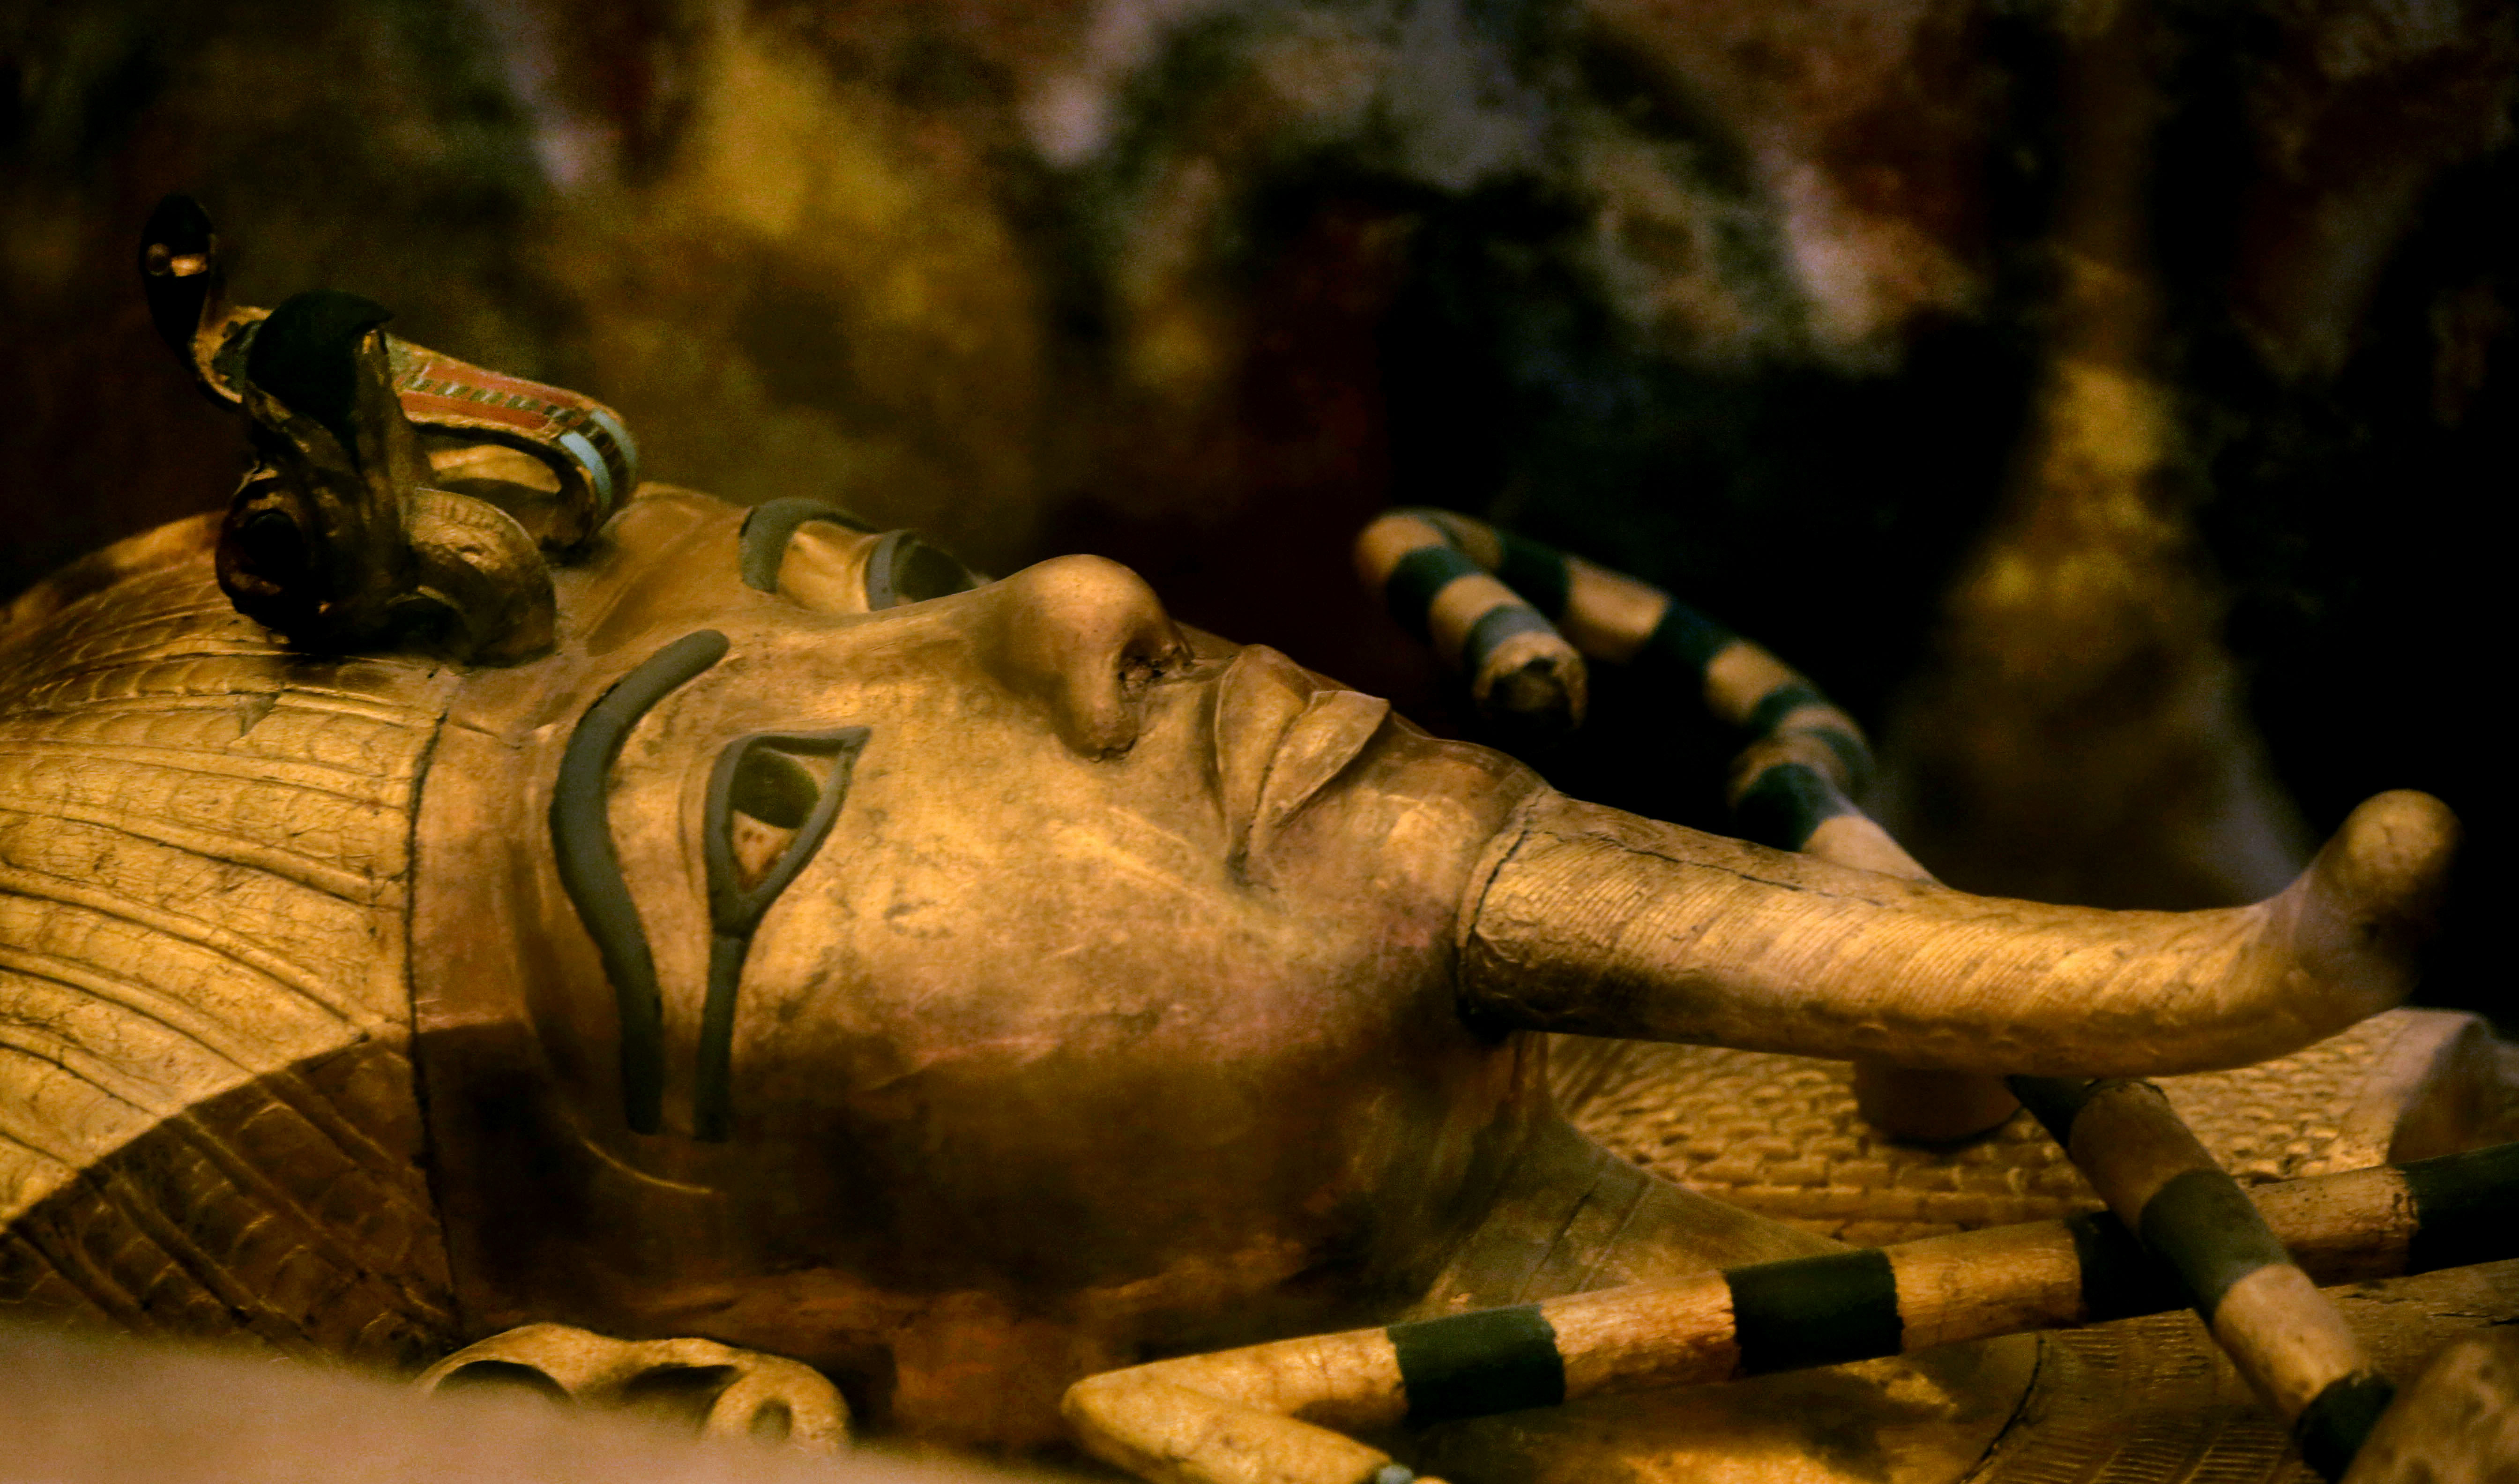 Experts doubt claims of 'hidden chambers' in King Tut's tomb